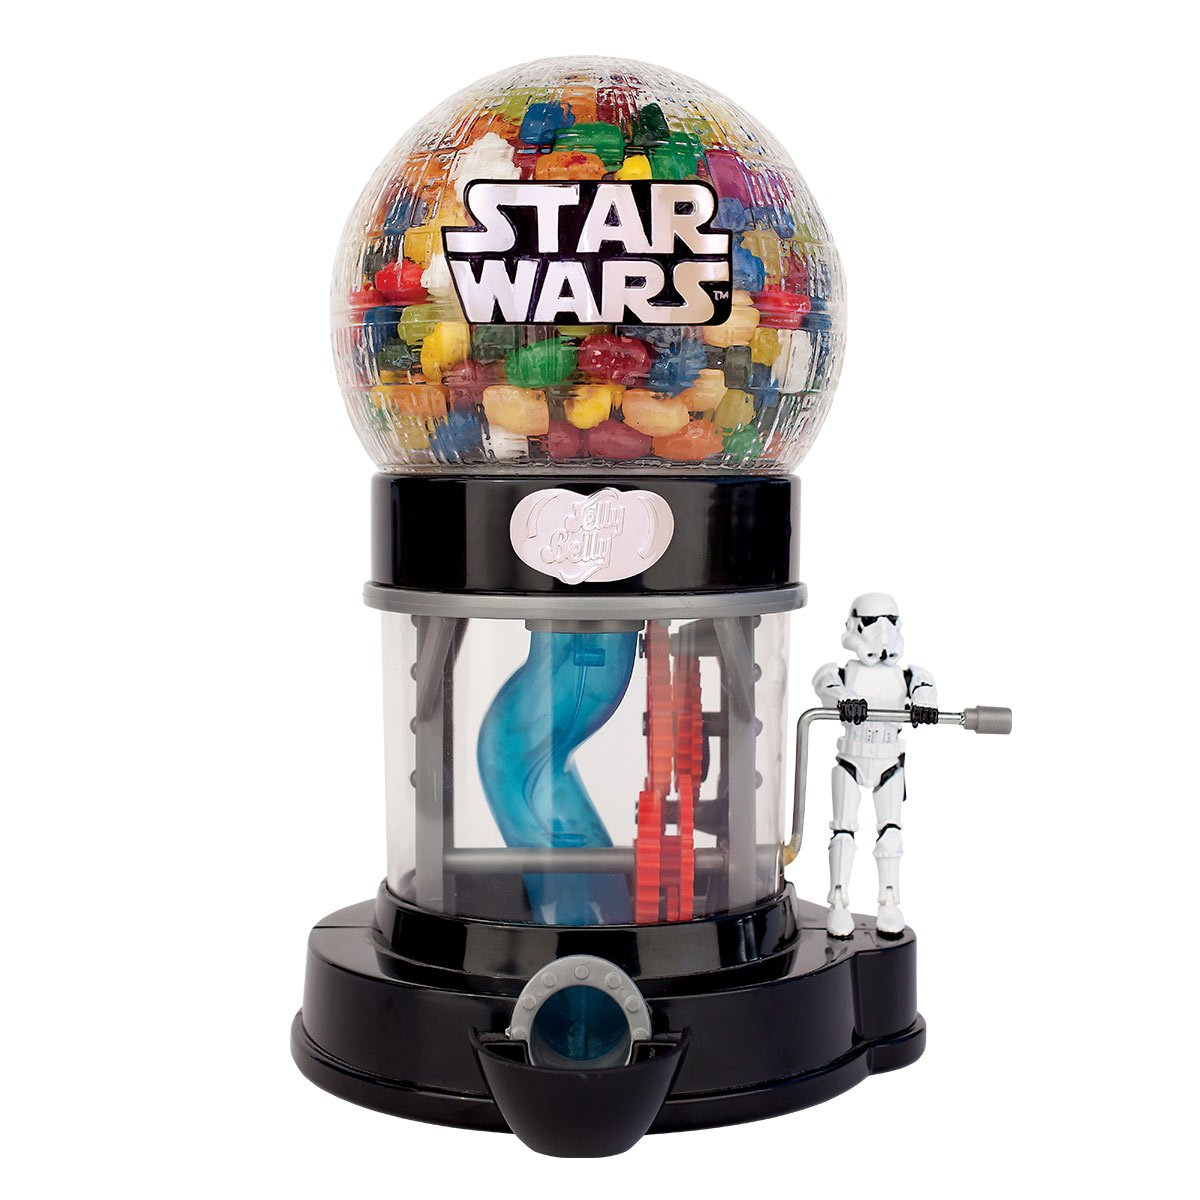 Amazon.com : Disneys Star Wars Candy Dispenser (includes 1-oz Jelly Belly JellyBeans) : Grocery & Gourmet Food